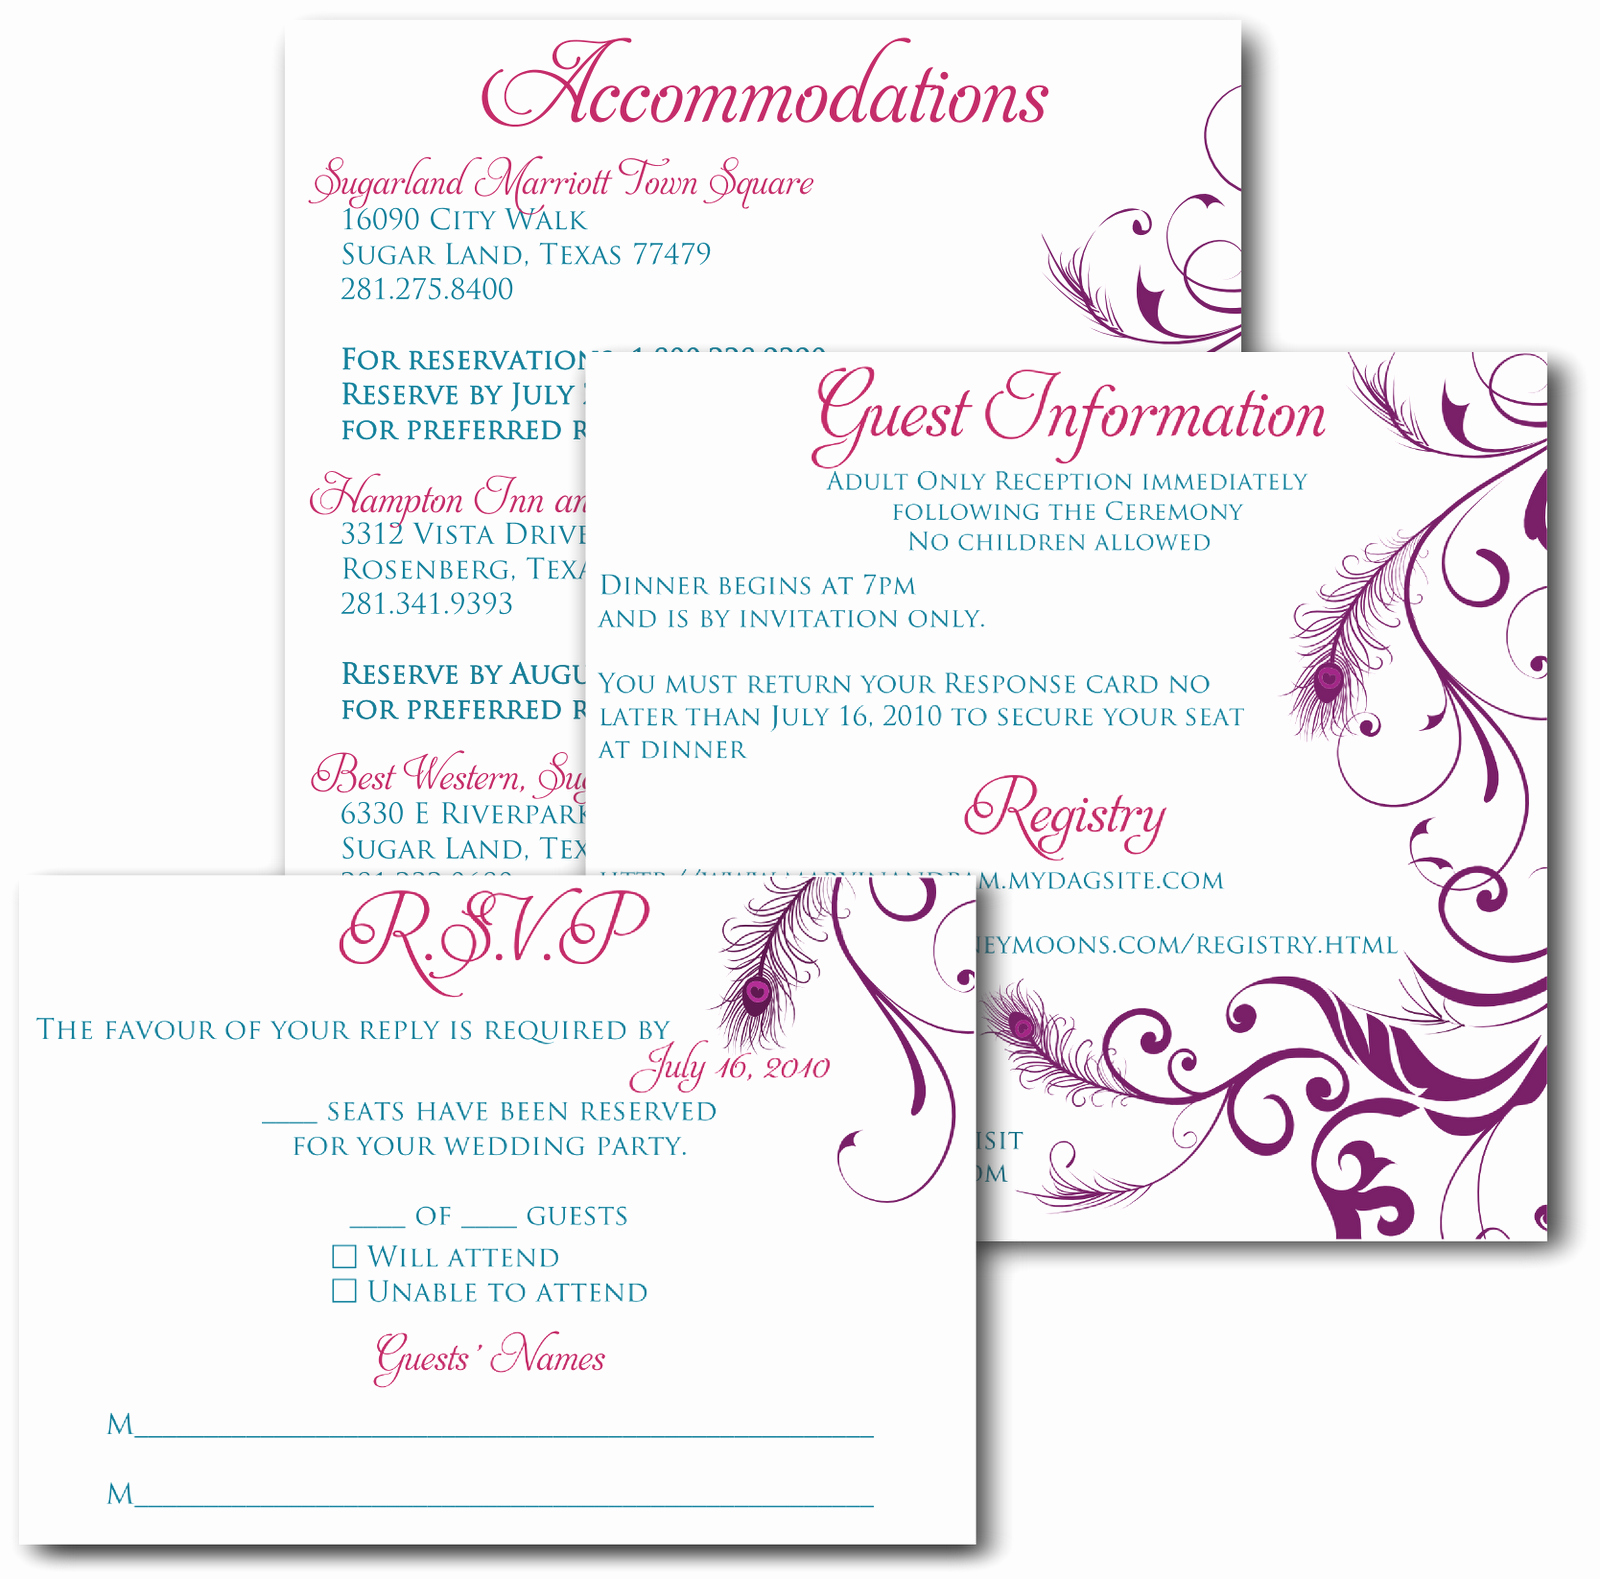 Wedding Invitation Insert Templates Awesome Download Free software Wedding Insert Wording Templates